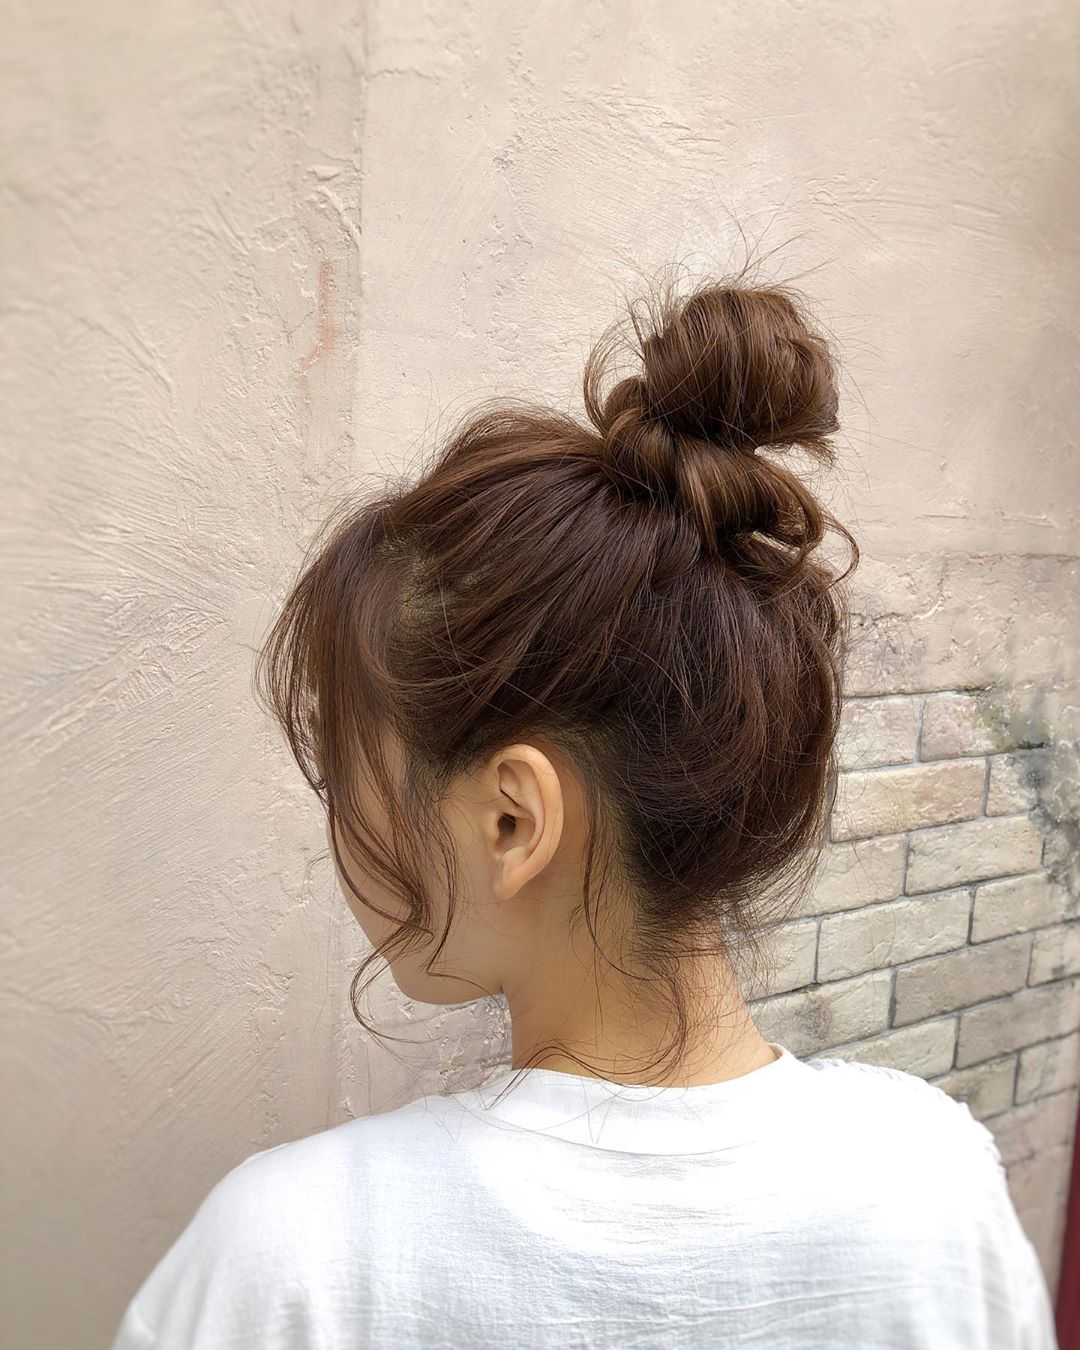 japanese hairstyles - textured messy bun with long side fringe back view